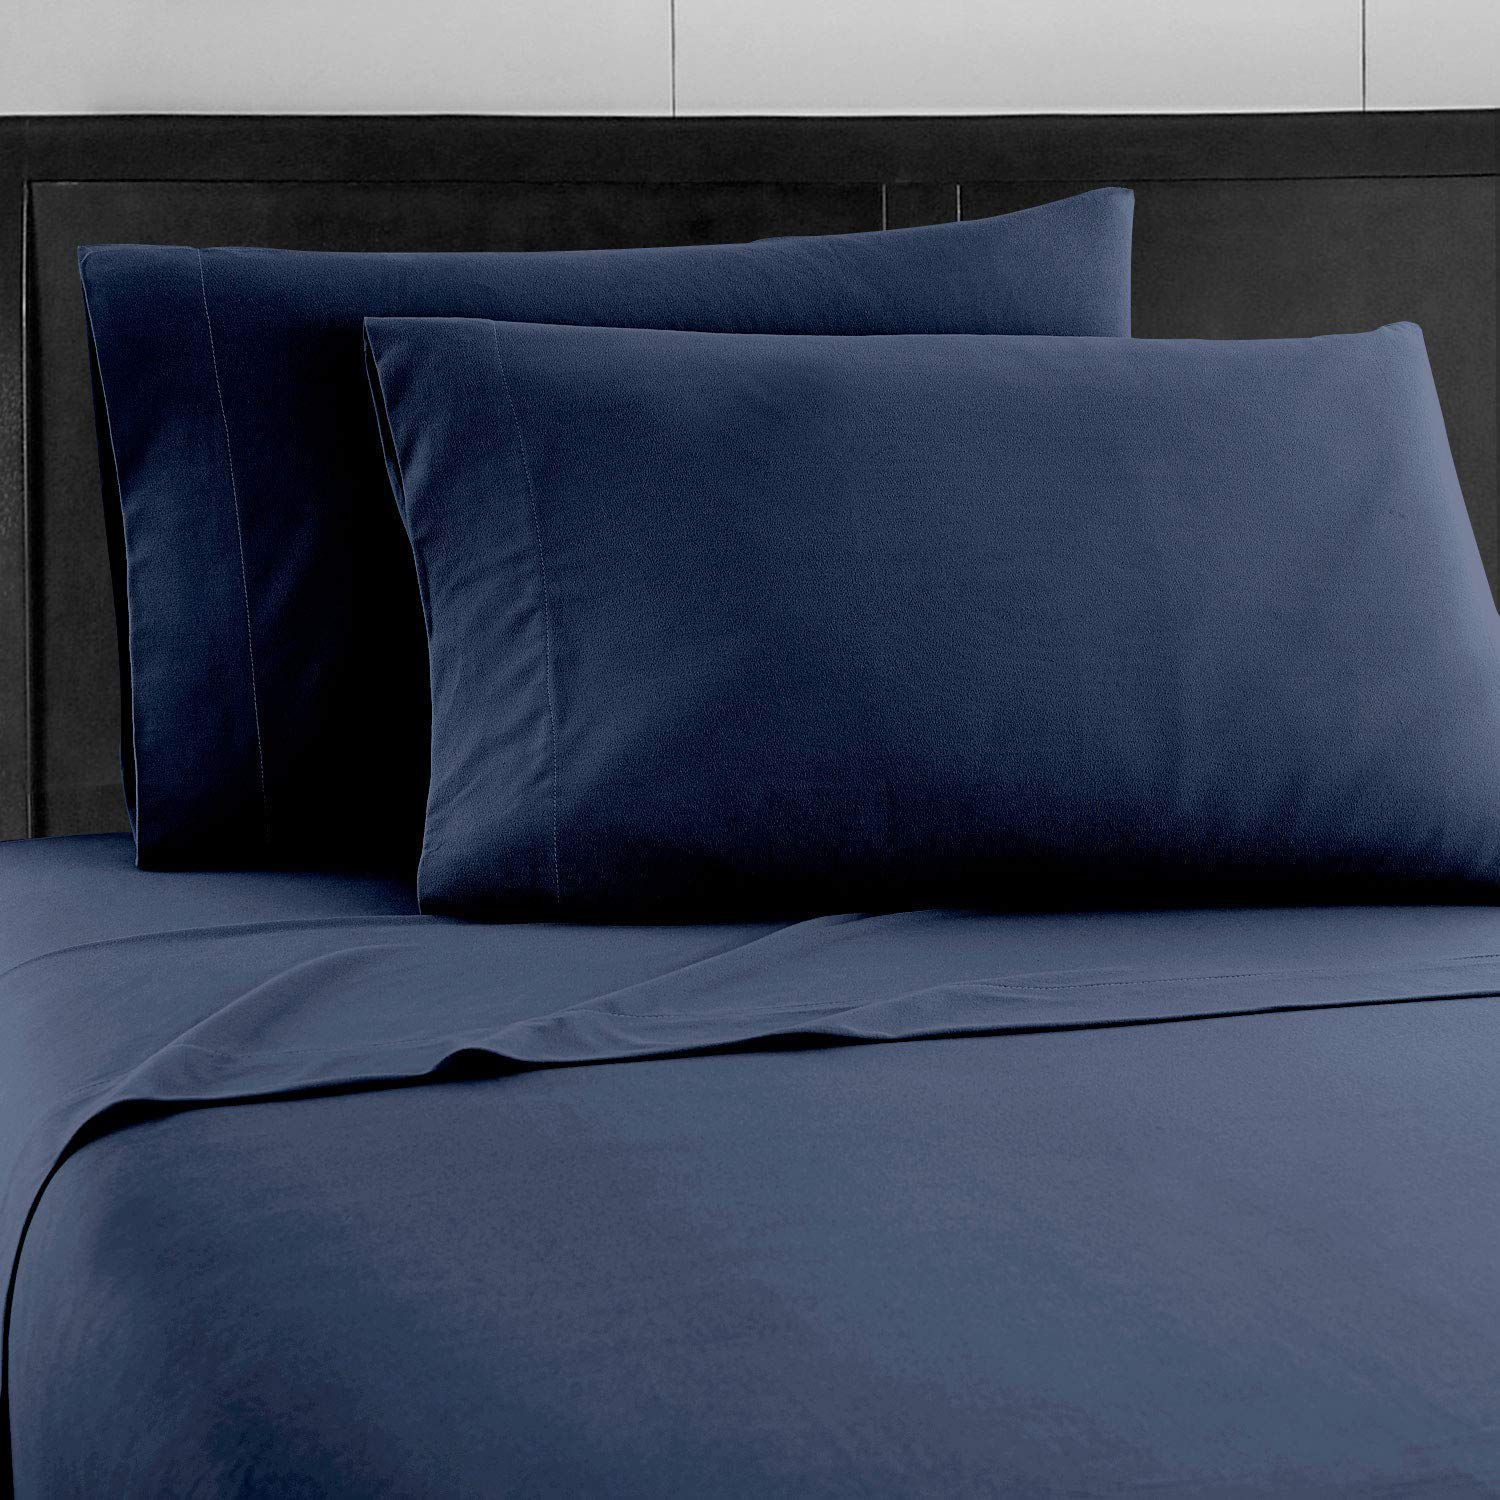 Prime Bedding Deep Pocket Fitted Sheets Never Come Untucked, According To  Amazon Users